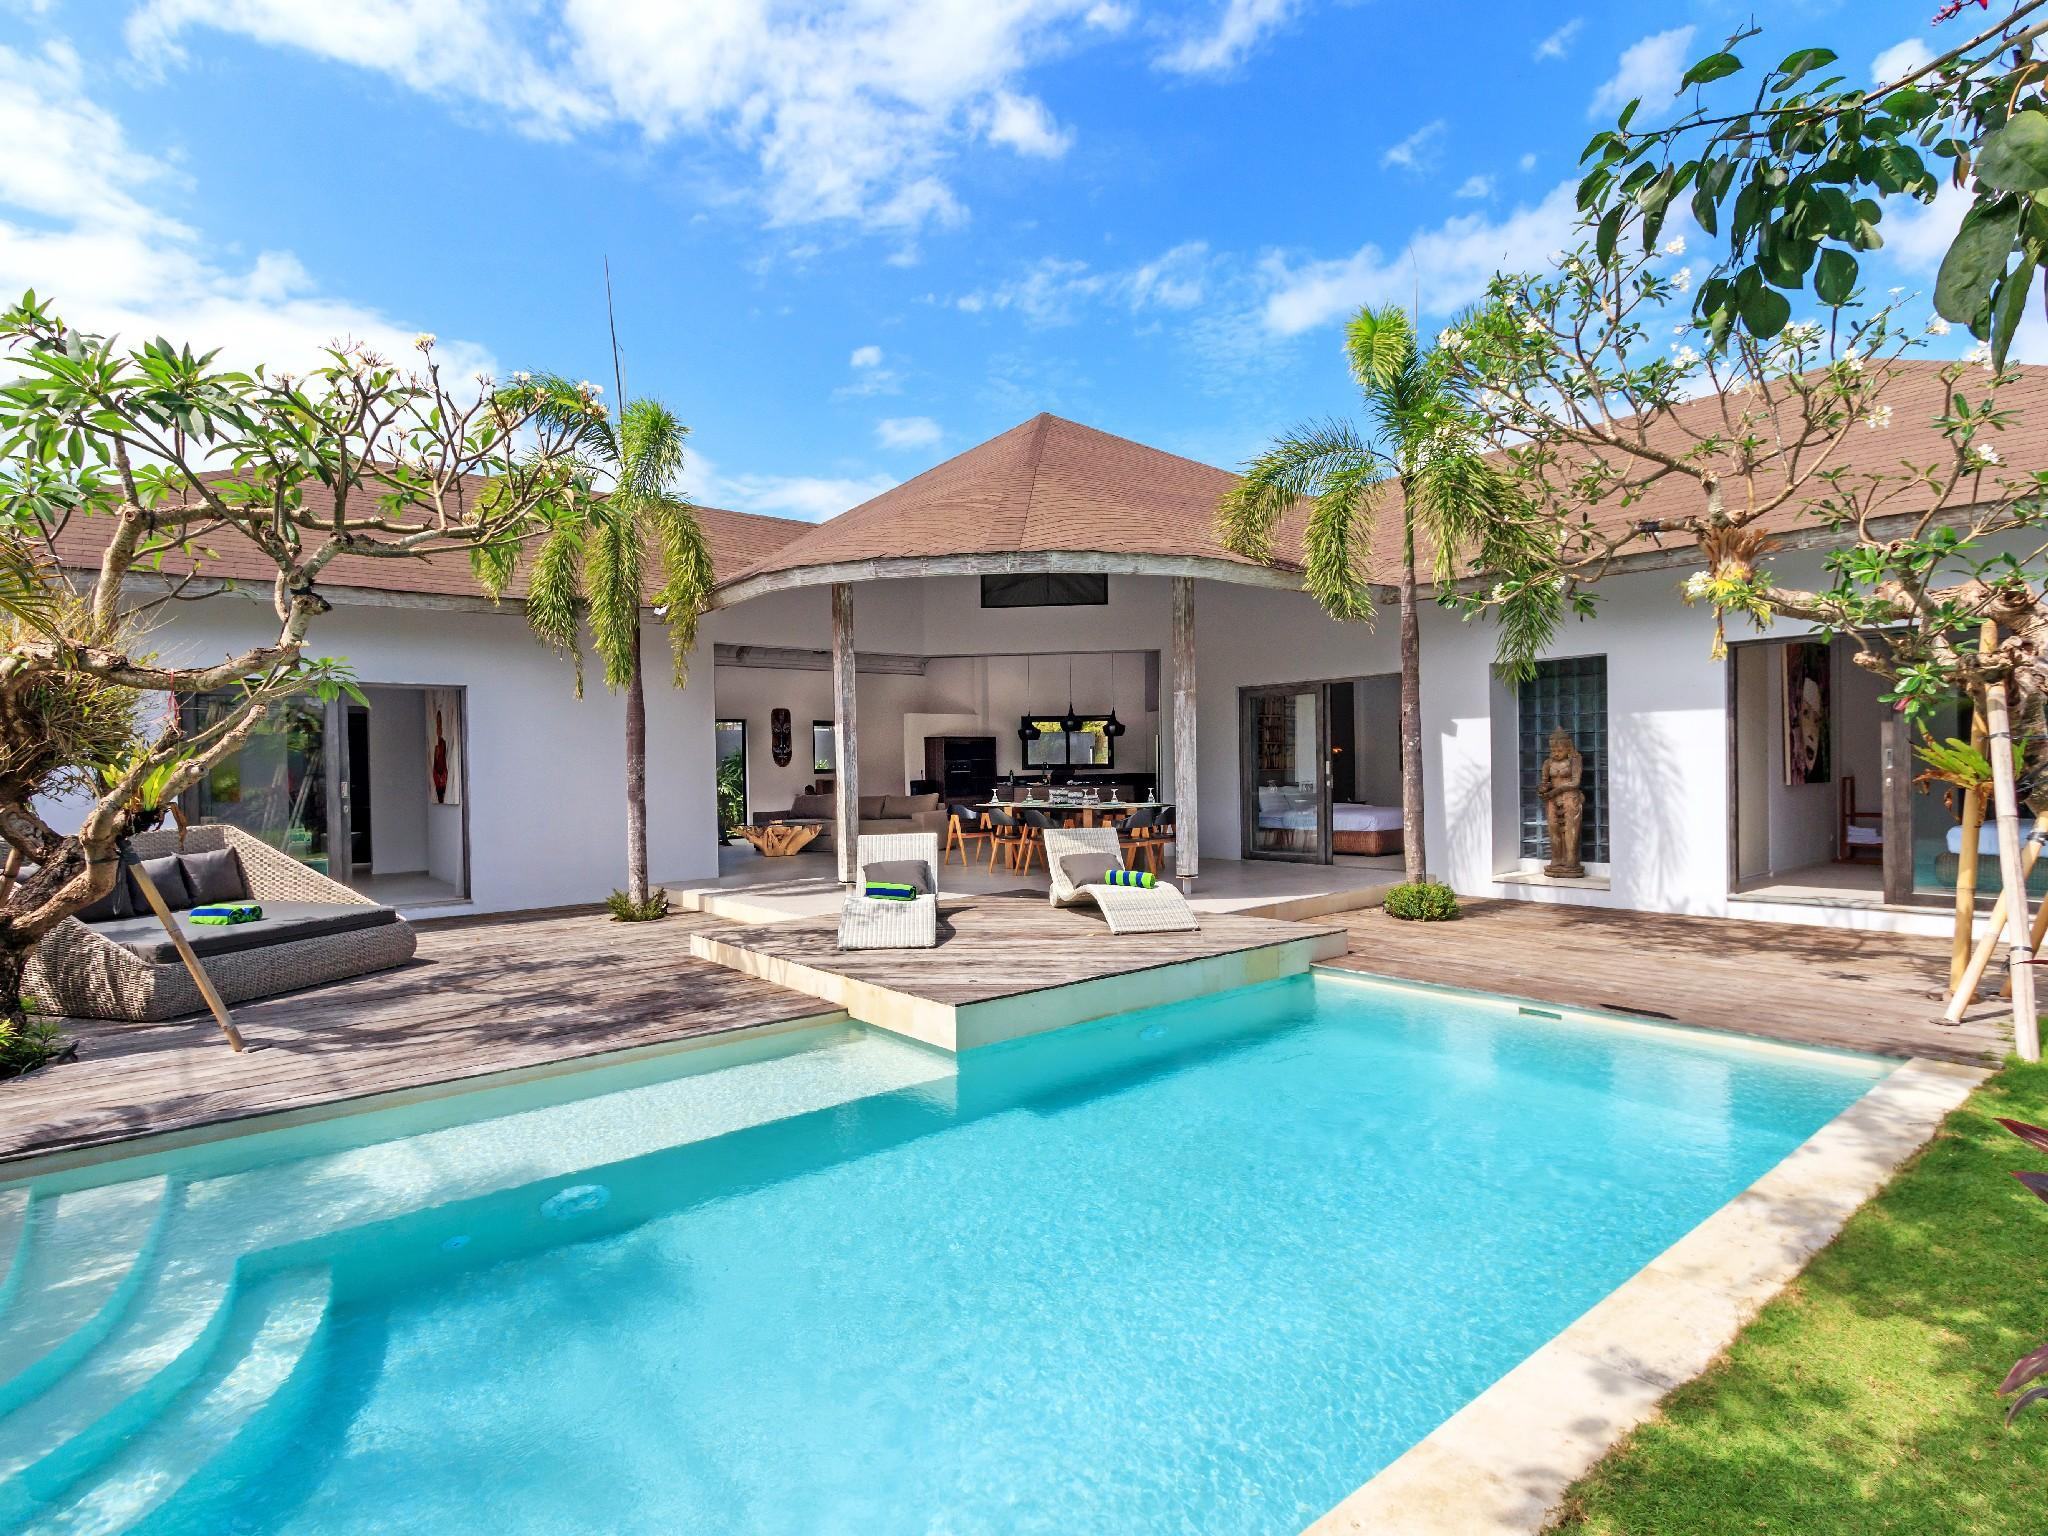 About Soulful, Tropical & Traditional - Villa Ohana 3 BR